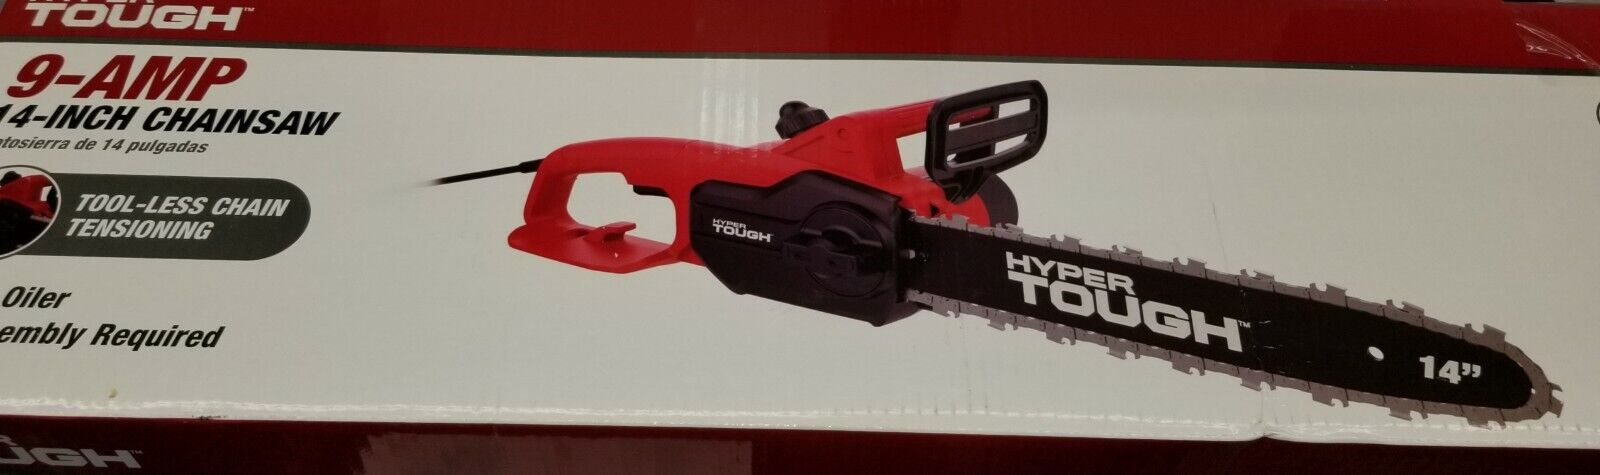 14 inch 9 amp electric chainsaw new